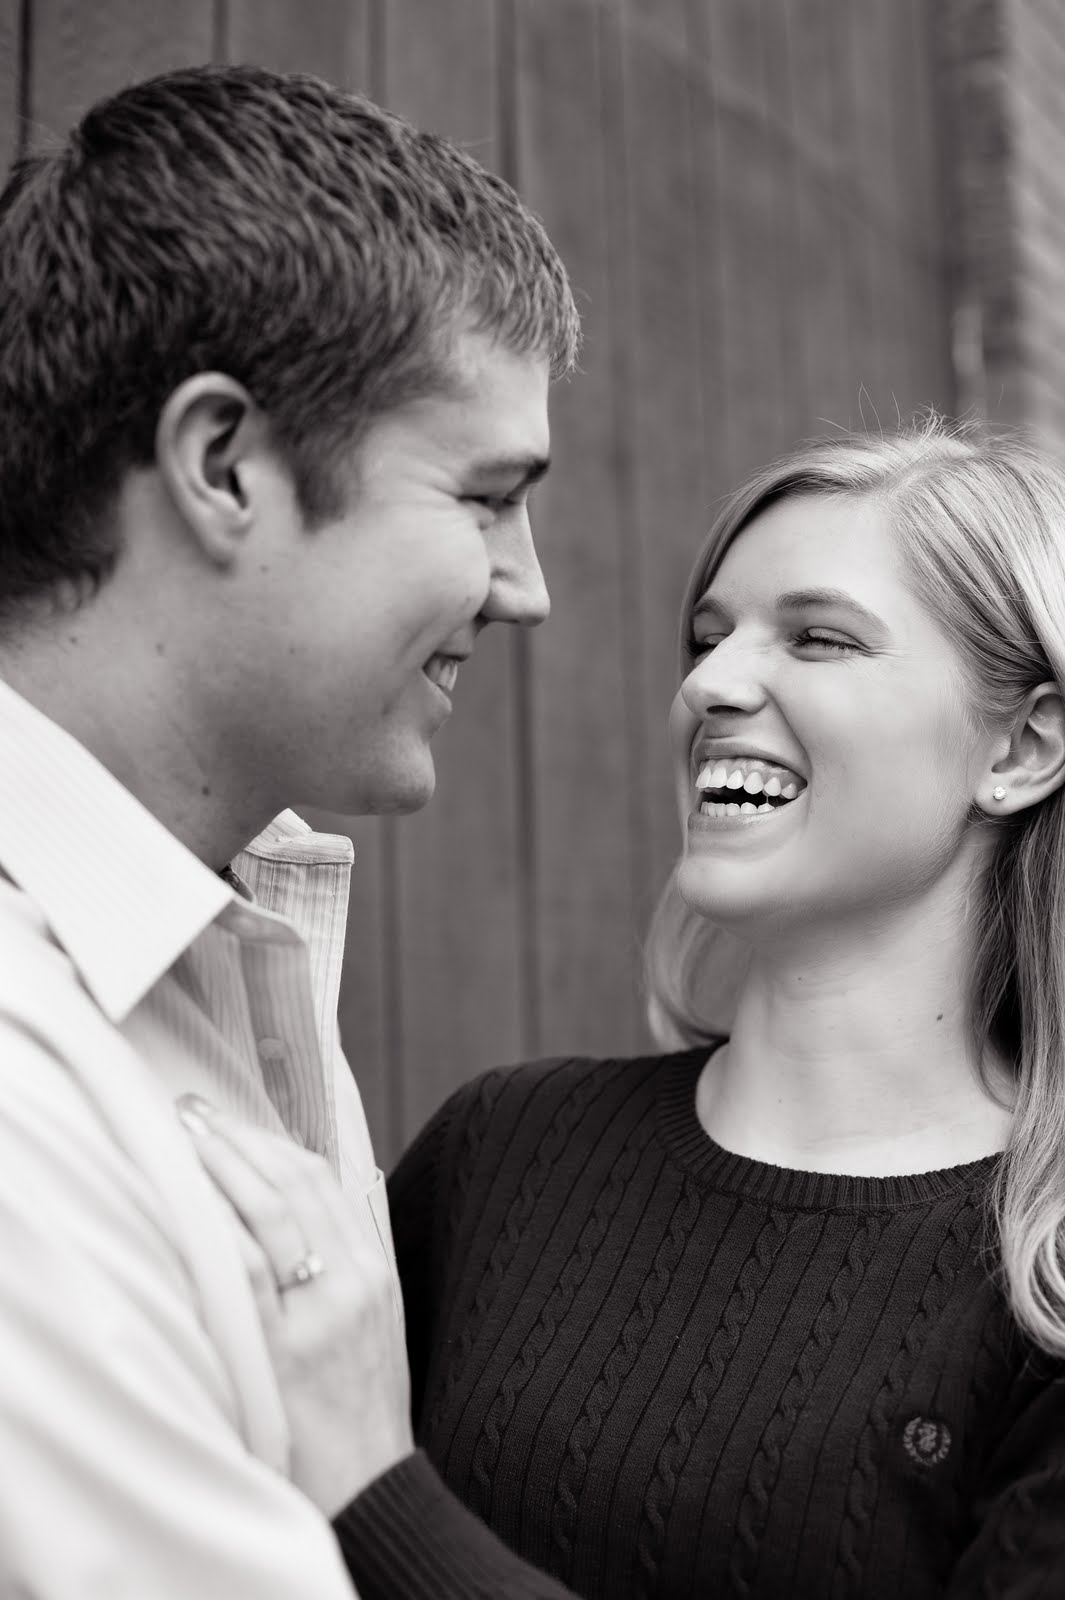 Lissie and Brandon | Engagement Photography